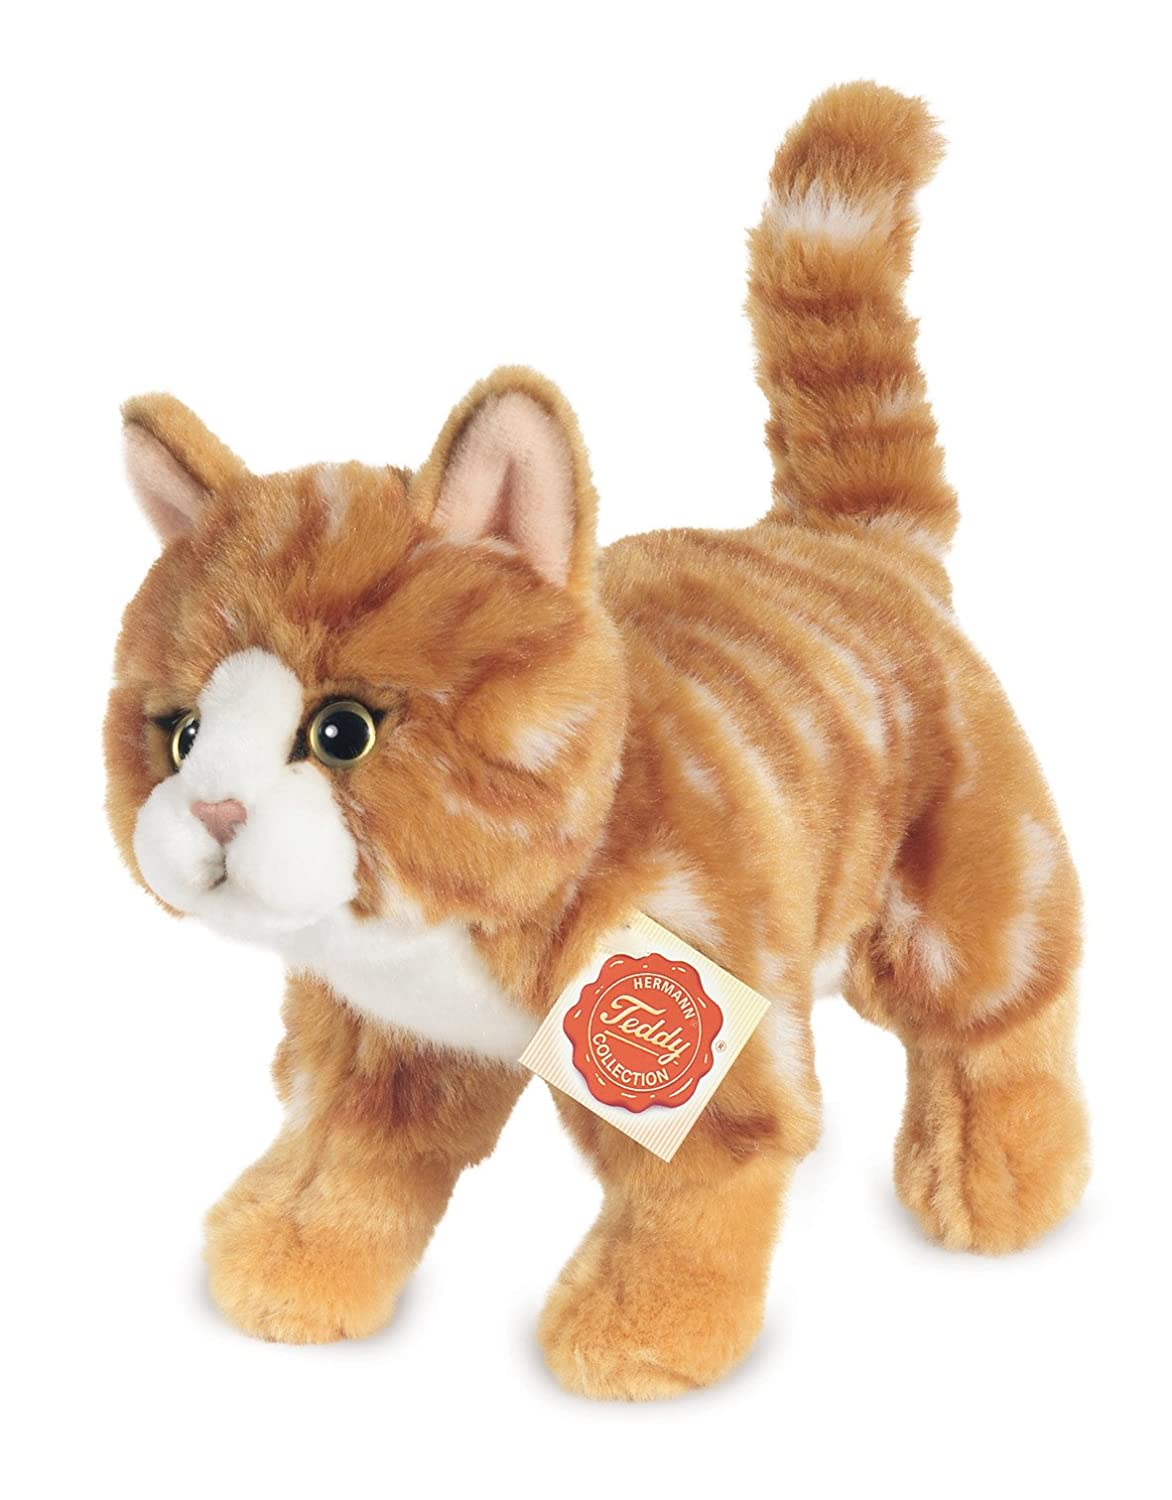 Hermann Teddy Collection - 906827 - Peluche - Chat Debout - 20 cm Maquereau - Rouge